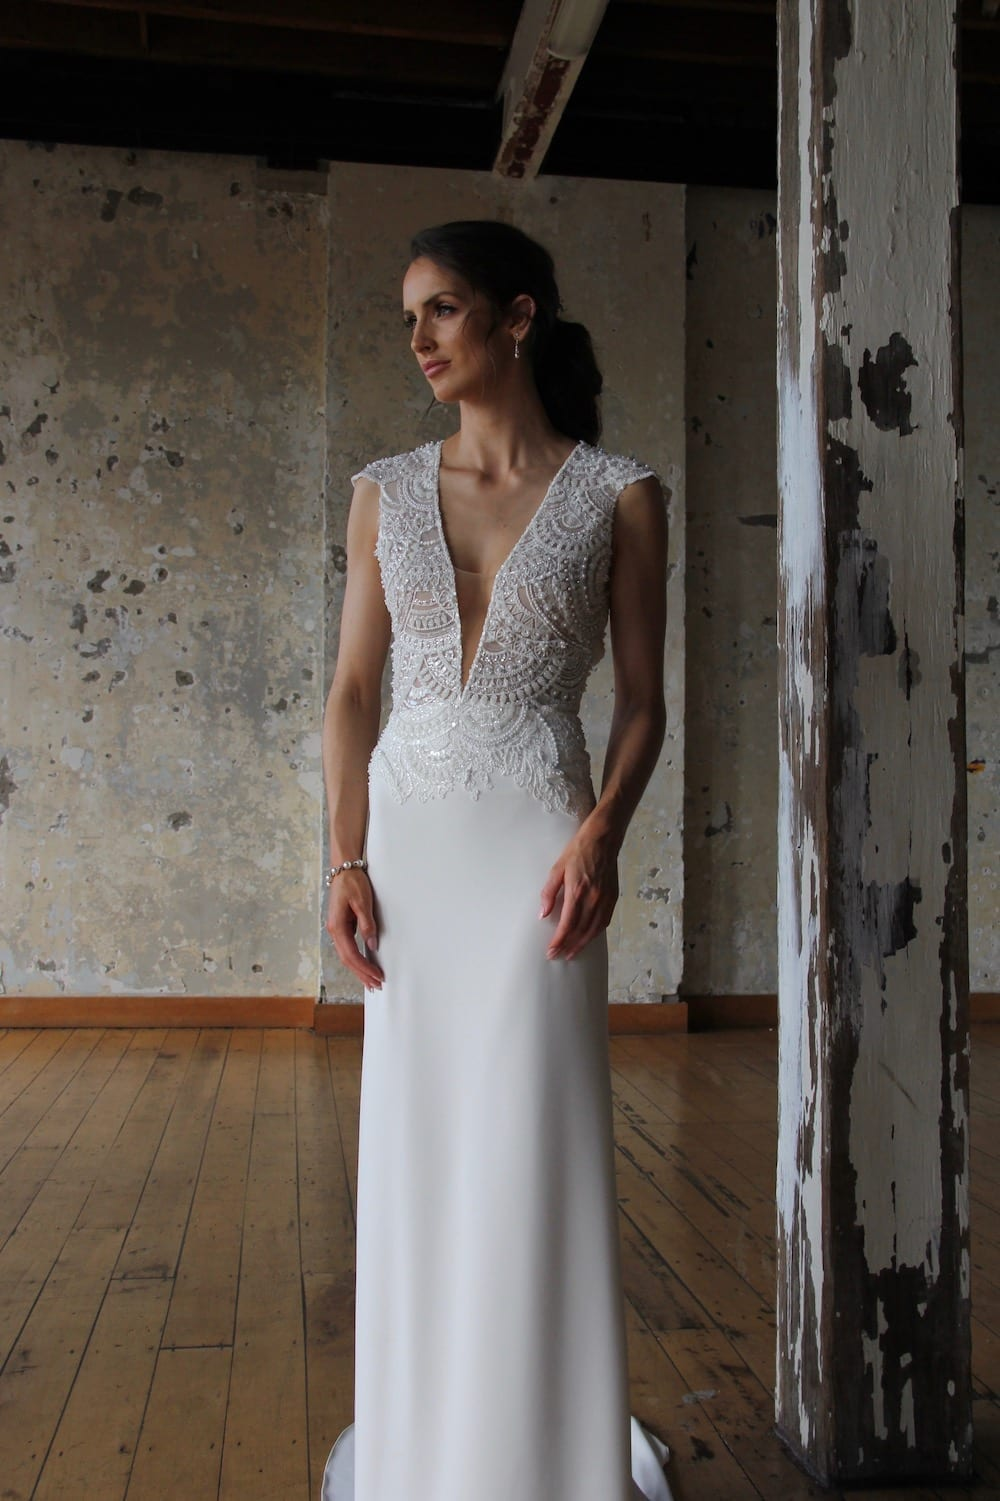 Female model wearing Vinka Design Modern Muse Wedding Dress. In chic warehouse the front detail of a gown with a a richly beaded lace bodice, deep v-neckline, wide shoulders and a slim crepe skirt with a train.